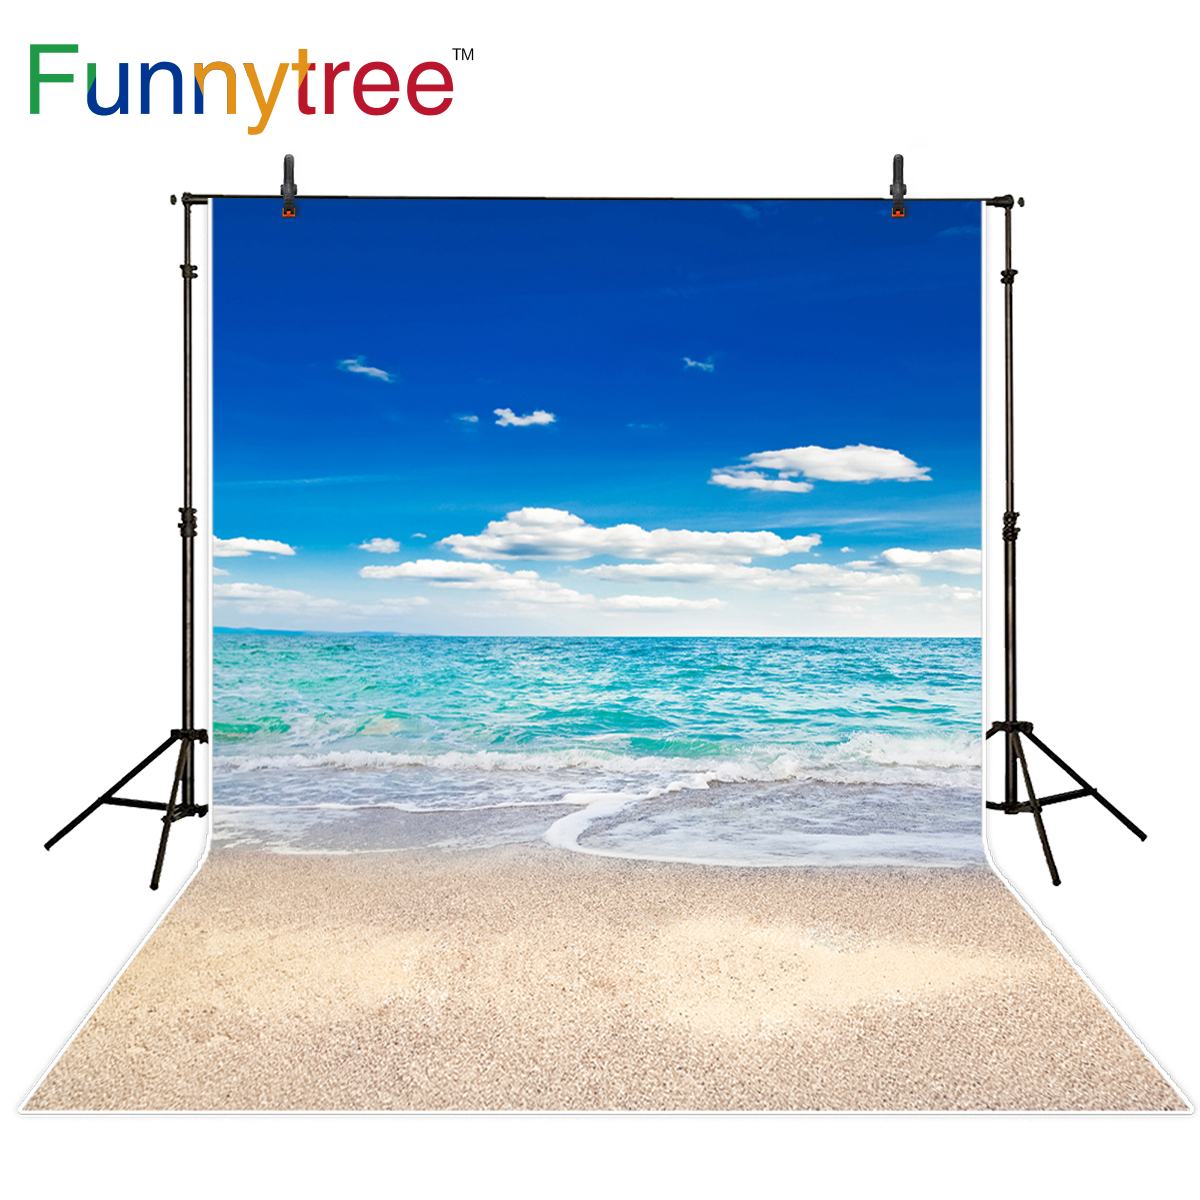 Funnytree photography background sea beach blue sky summer natural scenery backdrop photo studio photobooth professional newborn photography background blue sky white clouds photo backdrop vinyl balloons scattered petals backgrounds for photo studio